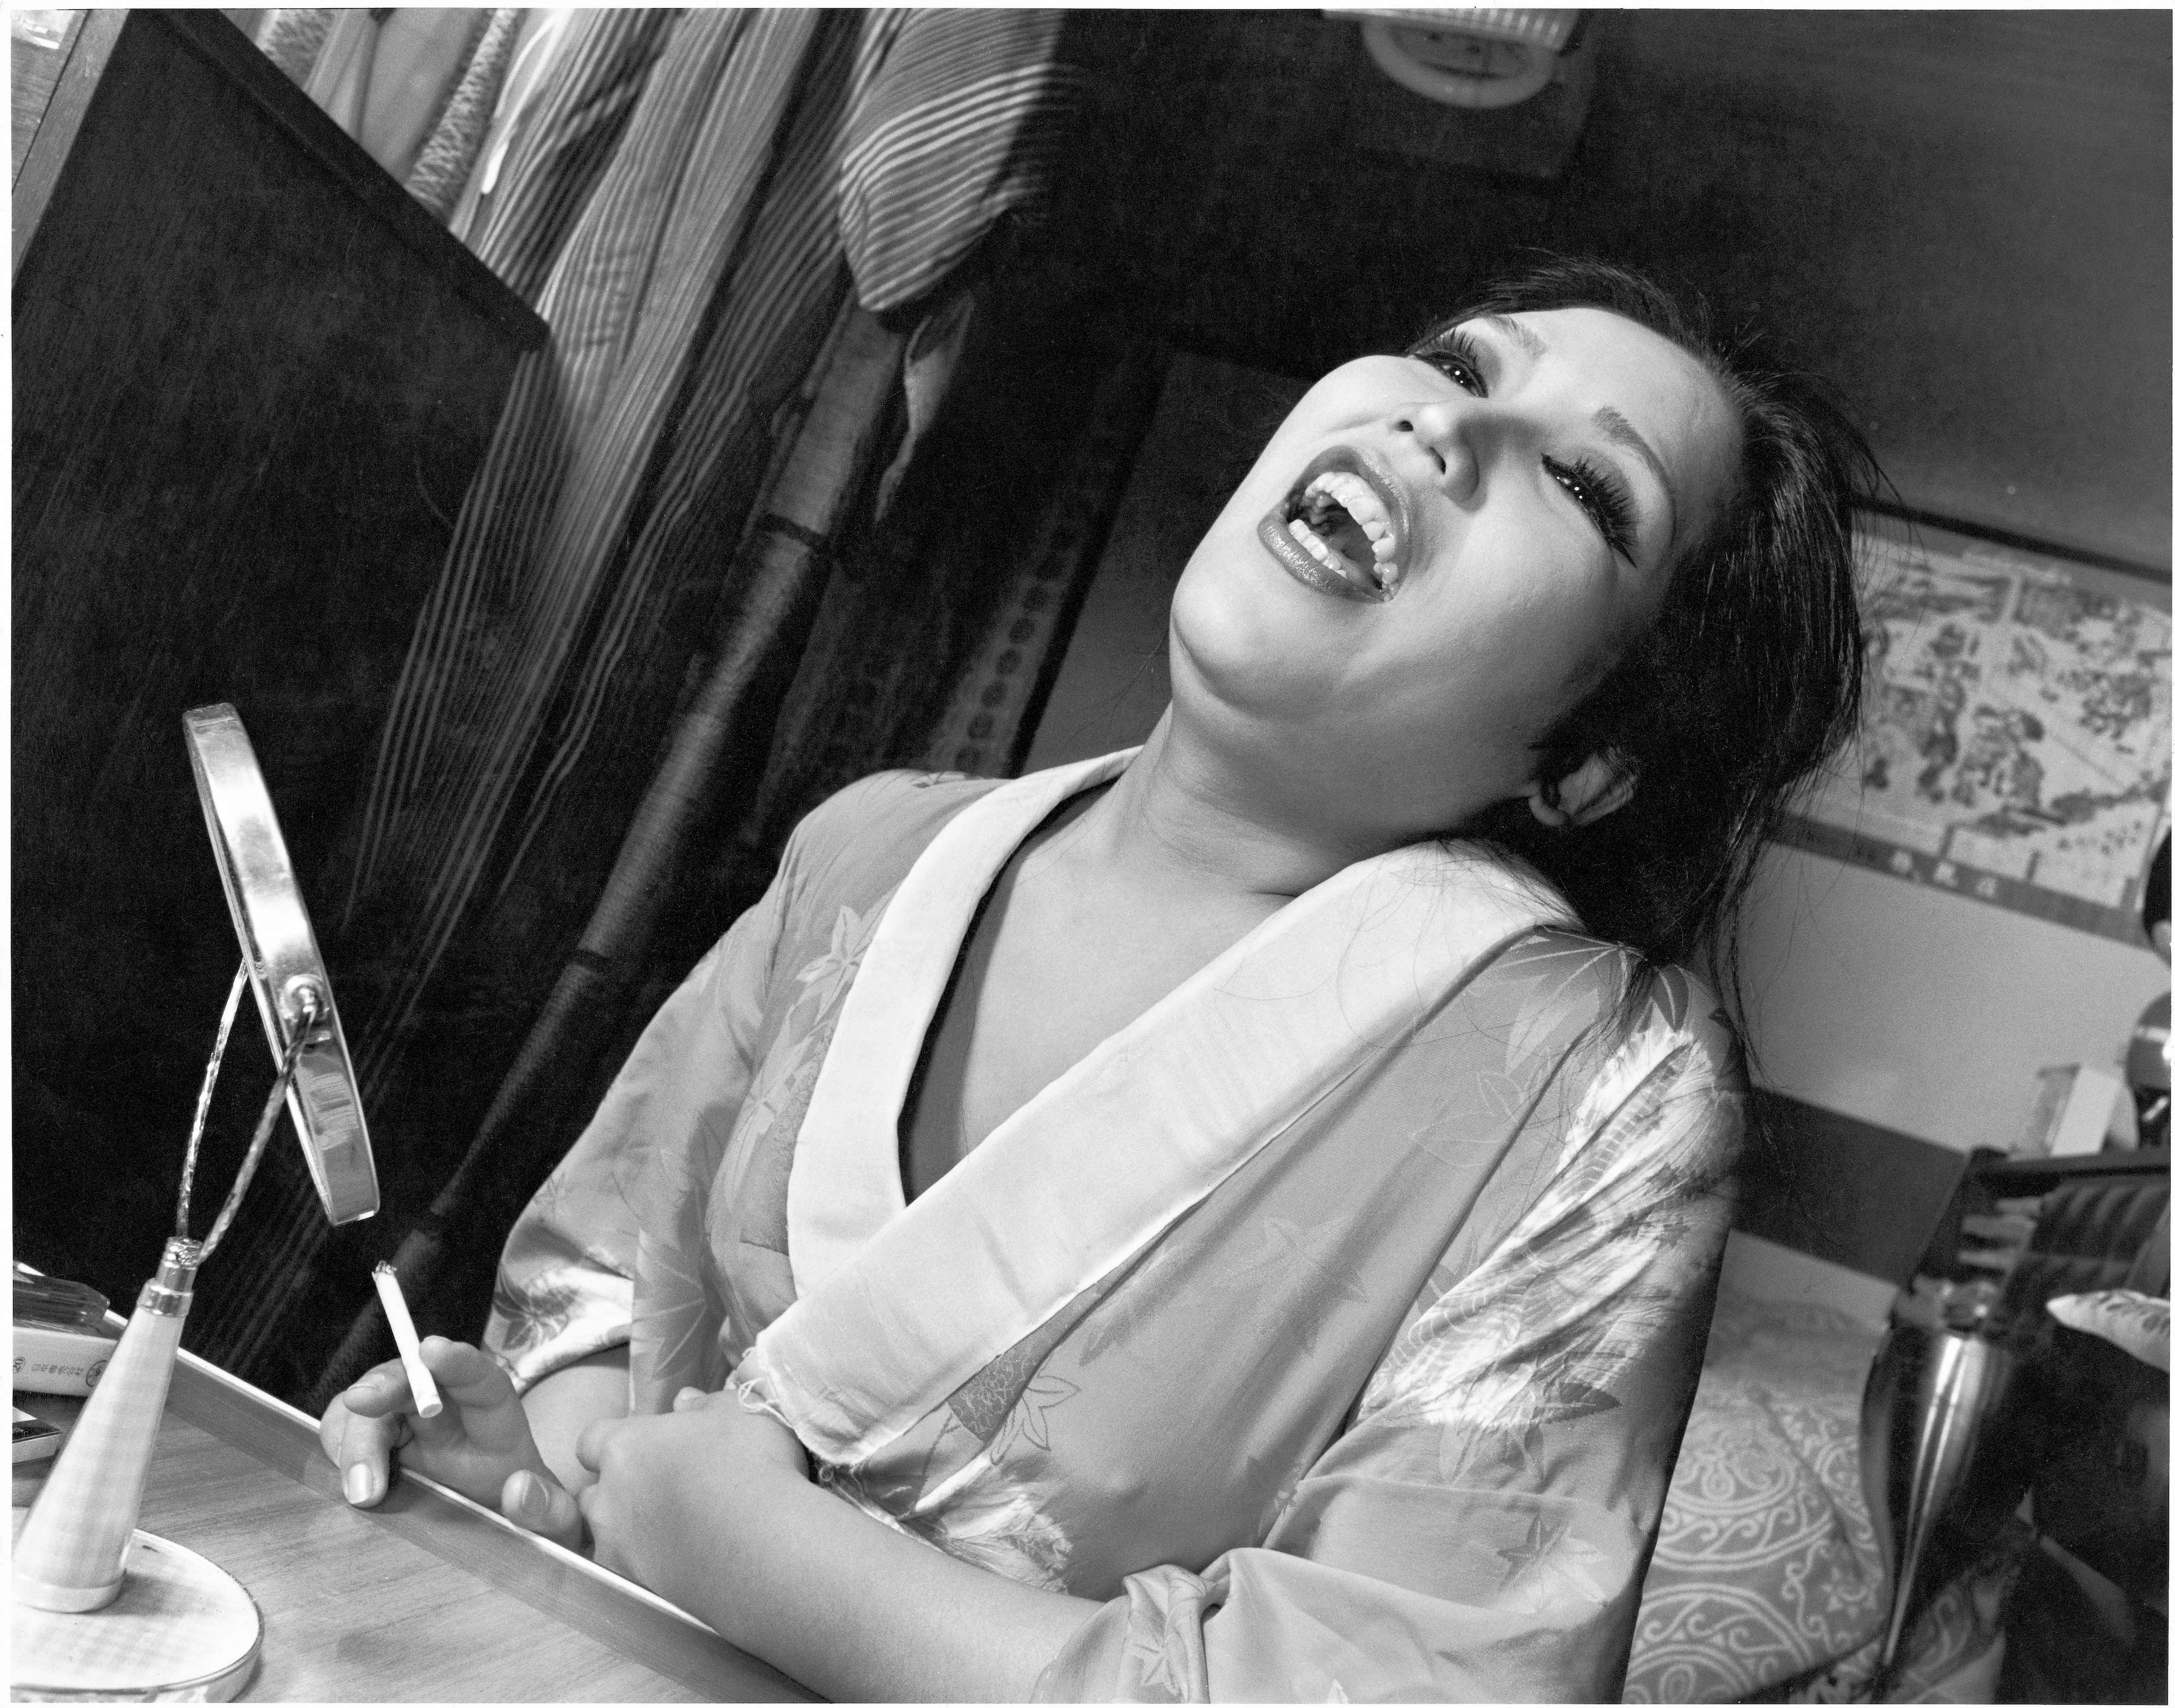 Sister Akane, at home, laughing. Ikebukuro, Honcho, 1977 From the series Flash Up, 1975 -1979 Collection of Mark Pearson, Zen Foto Gallery